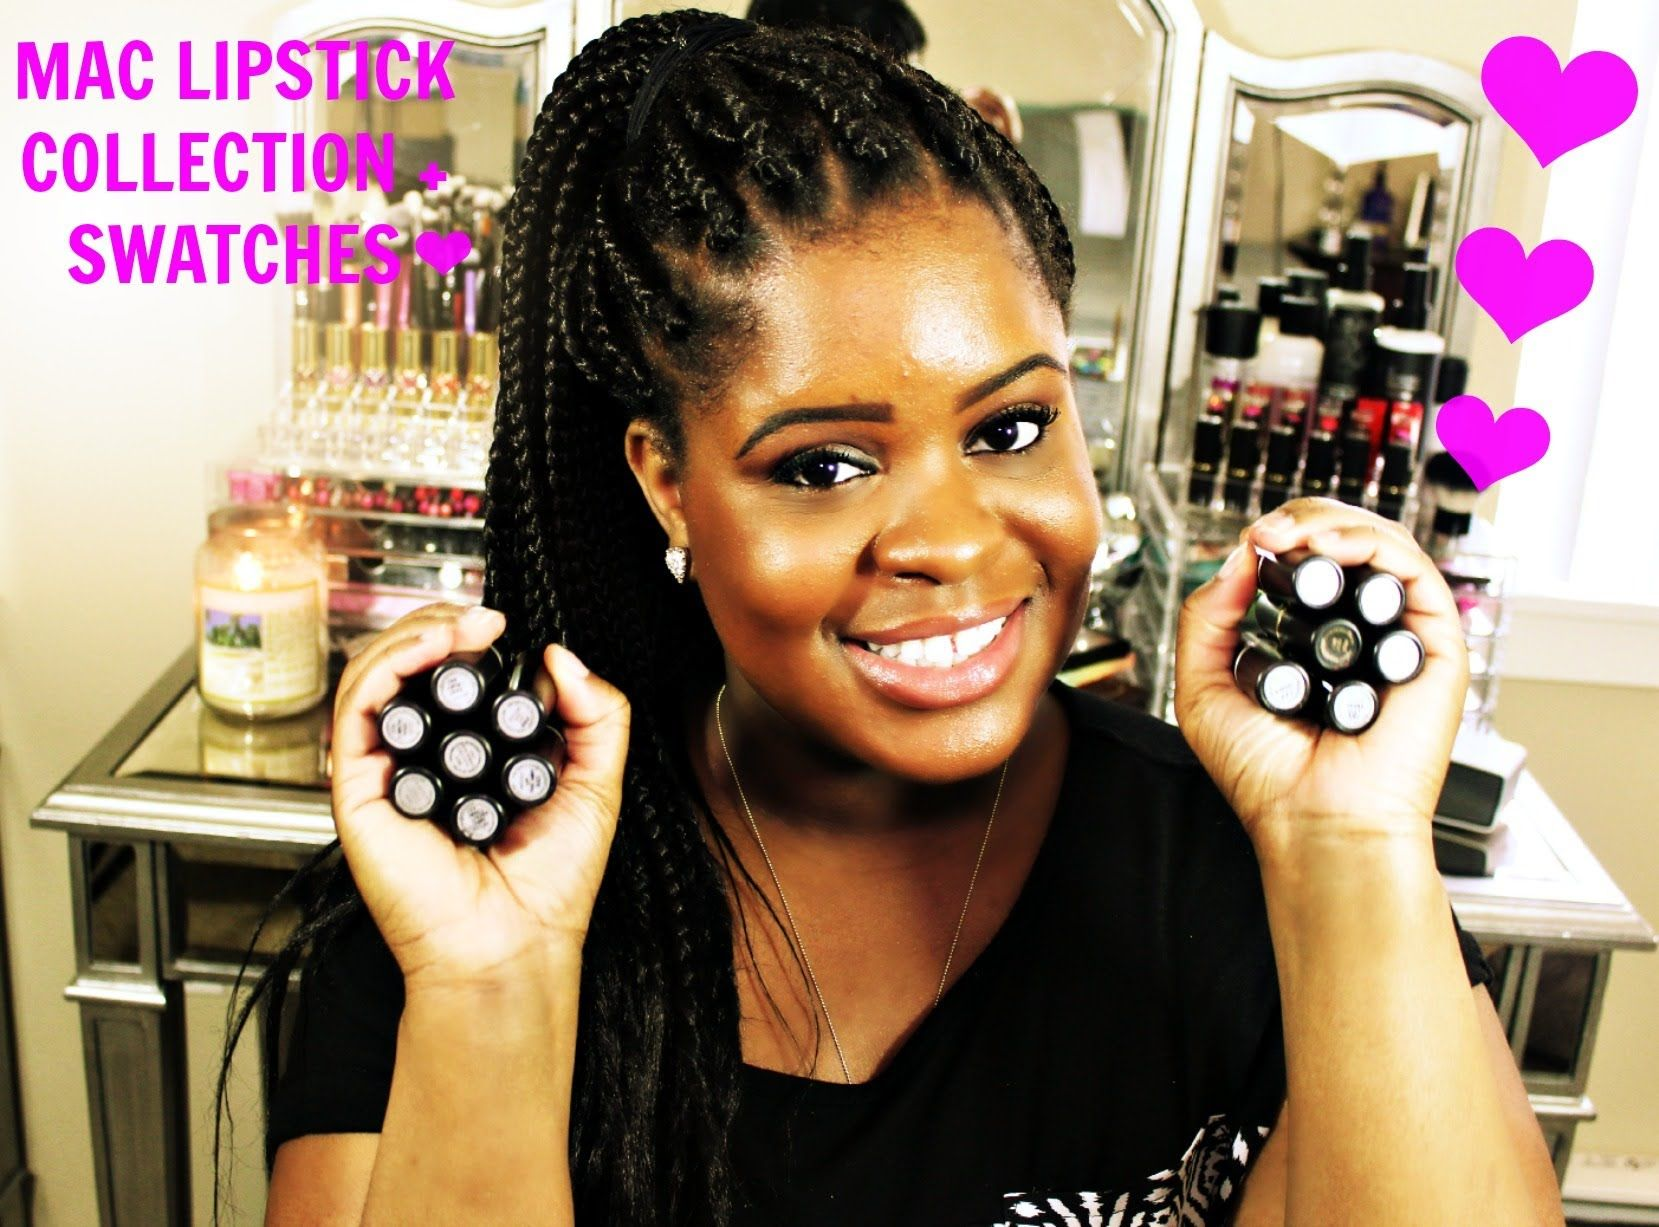 ❤ MAC Lipstick Collection Live Swatches On Dark Skin ❤ --. Flat Out fabulous and Candy yum yum and magenta lip liner